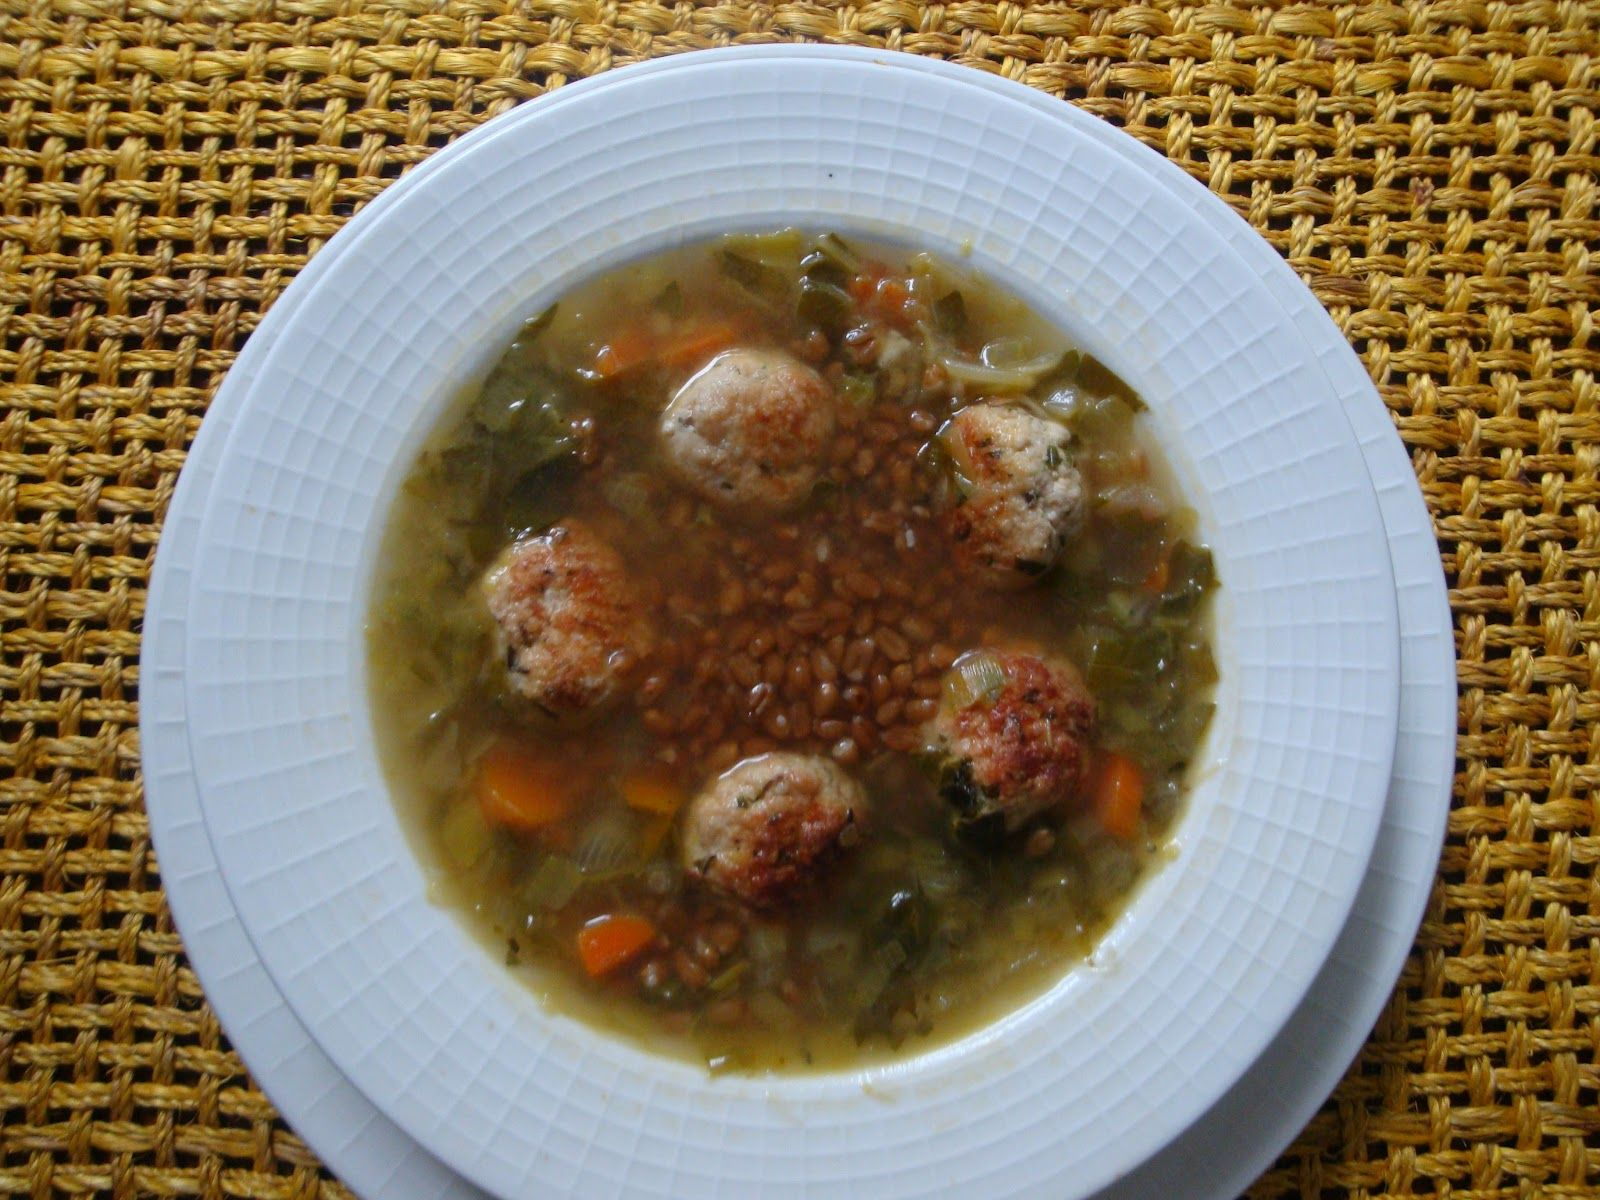 Laurilee's Healthy Cooking Blog- Follow me here and get recipe for Lightened up Italian Wedding Soup with Chicken Meat balls